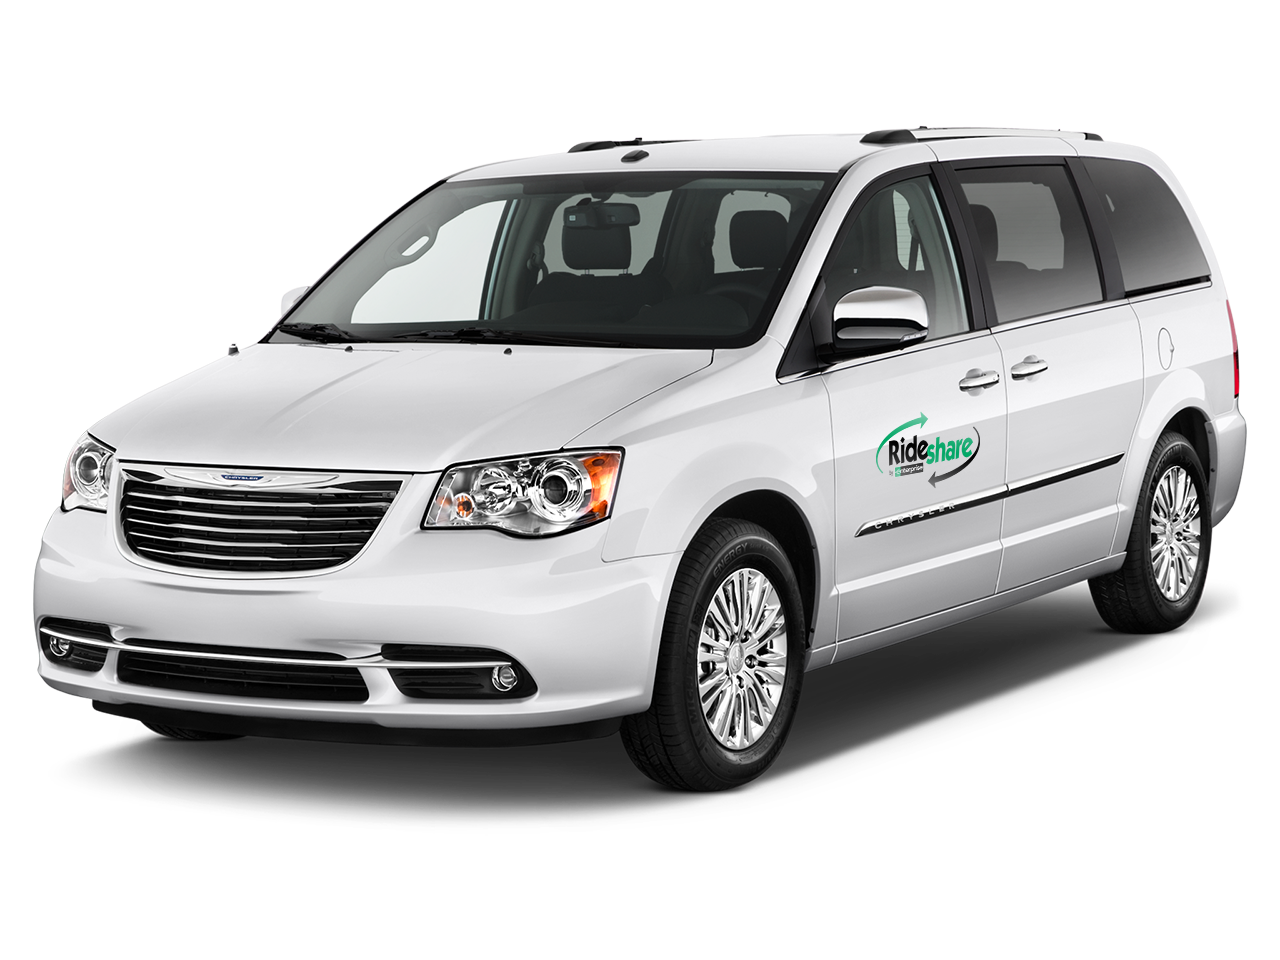 What Is Department In Enterprise Rent A Car